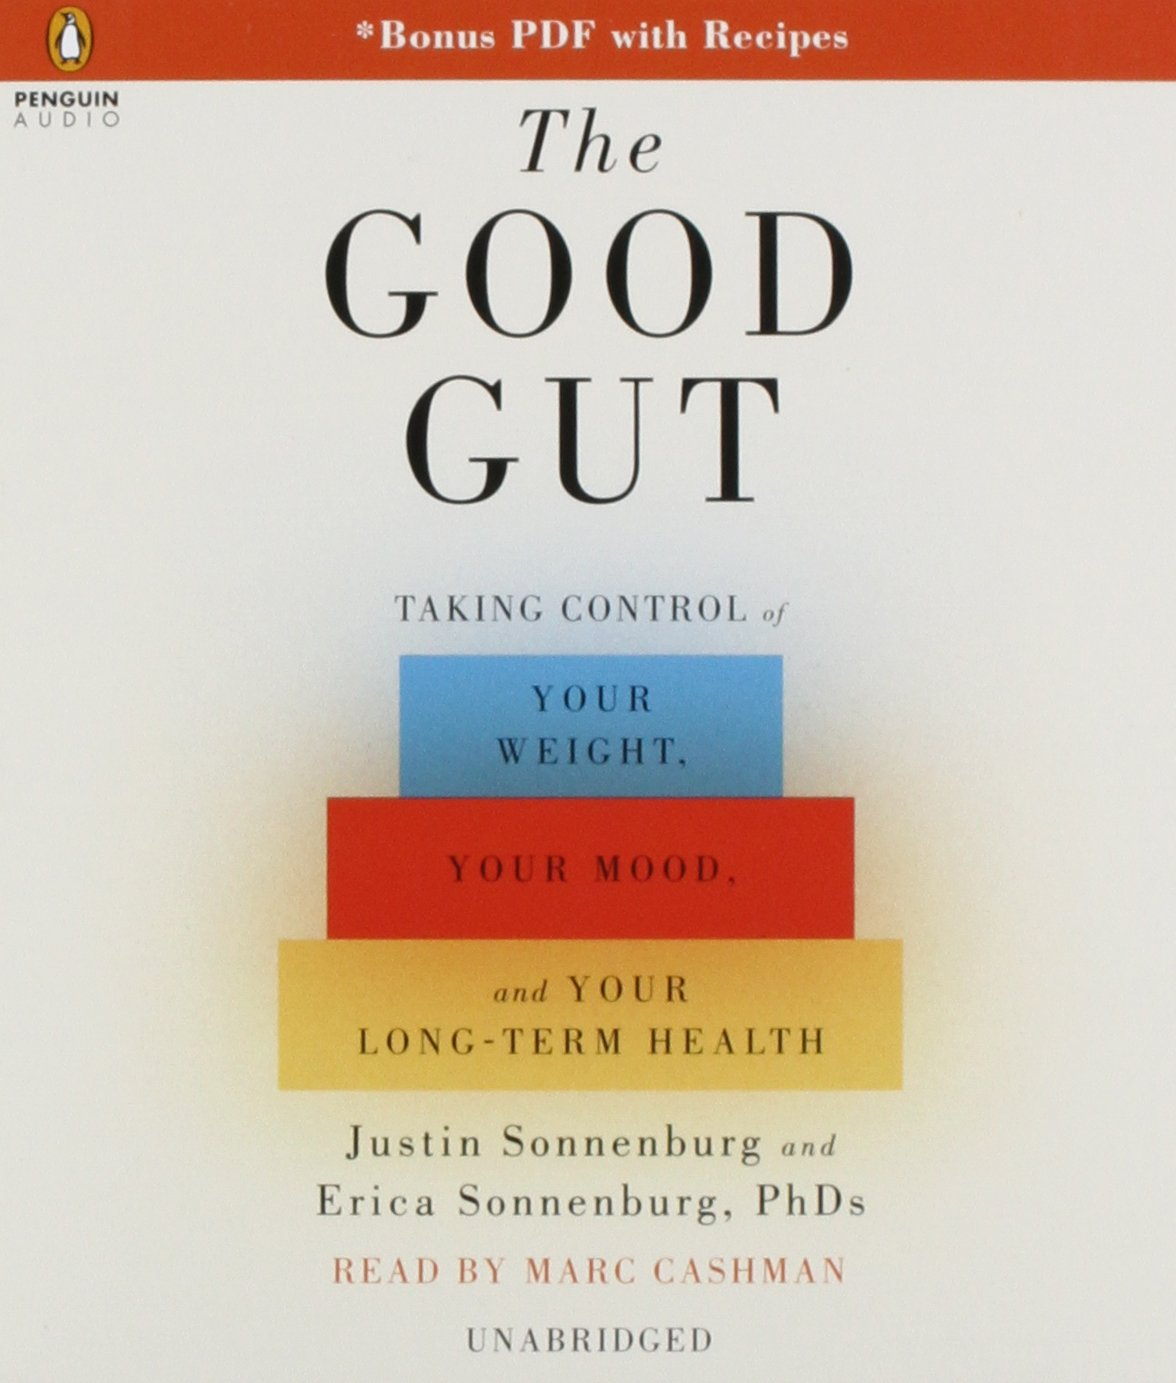 The Good Gut: Taking Control of Your Weight, Your Mood, and Your Long-Term Health by Penguin Audio